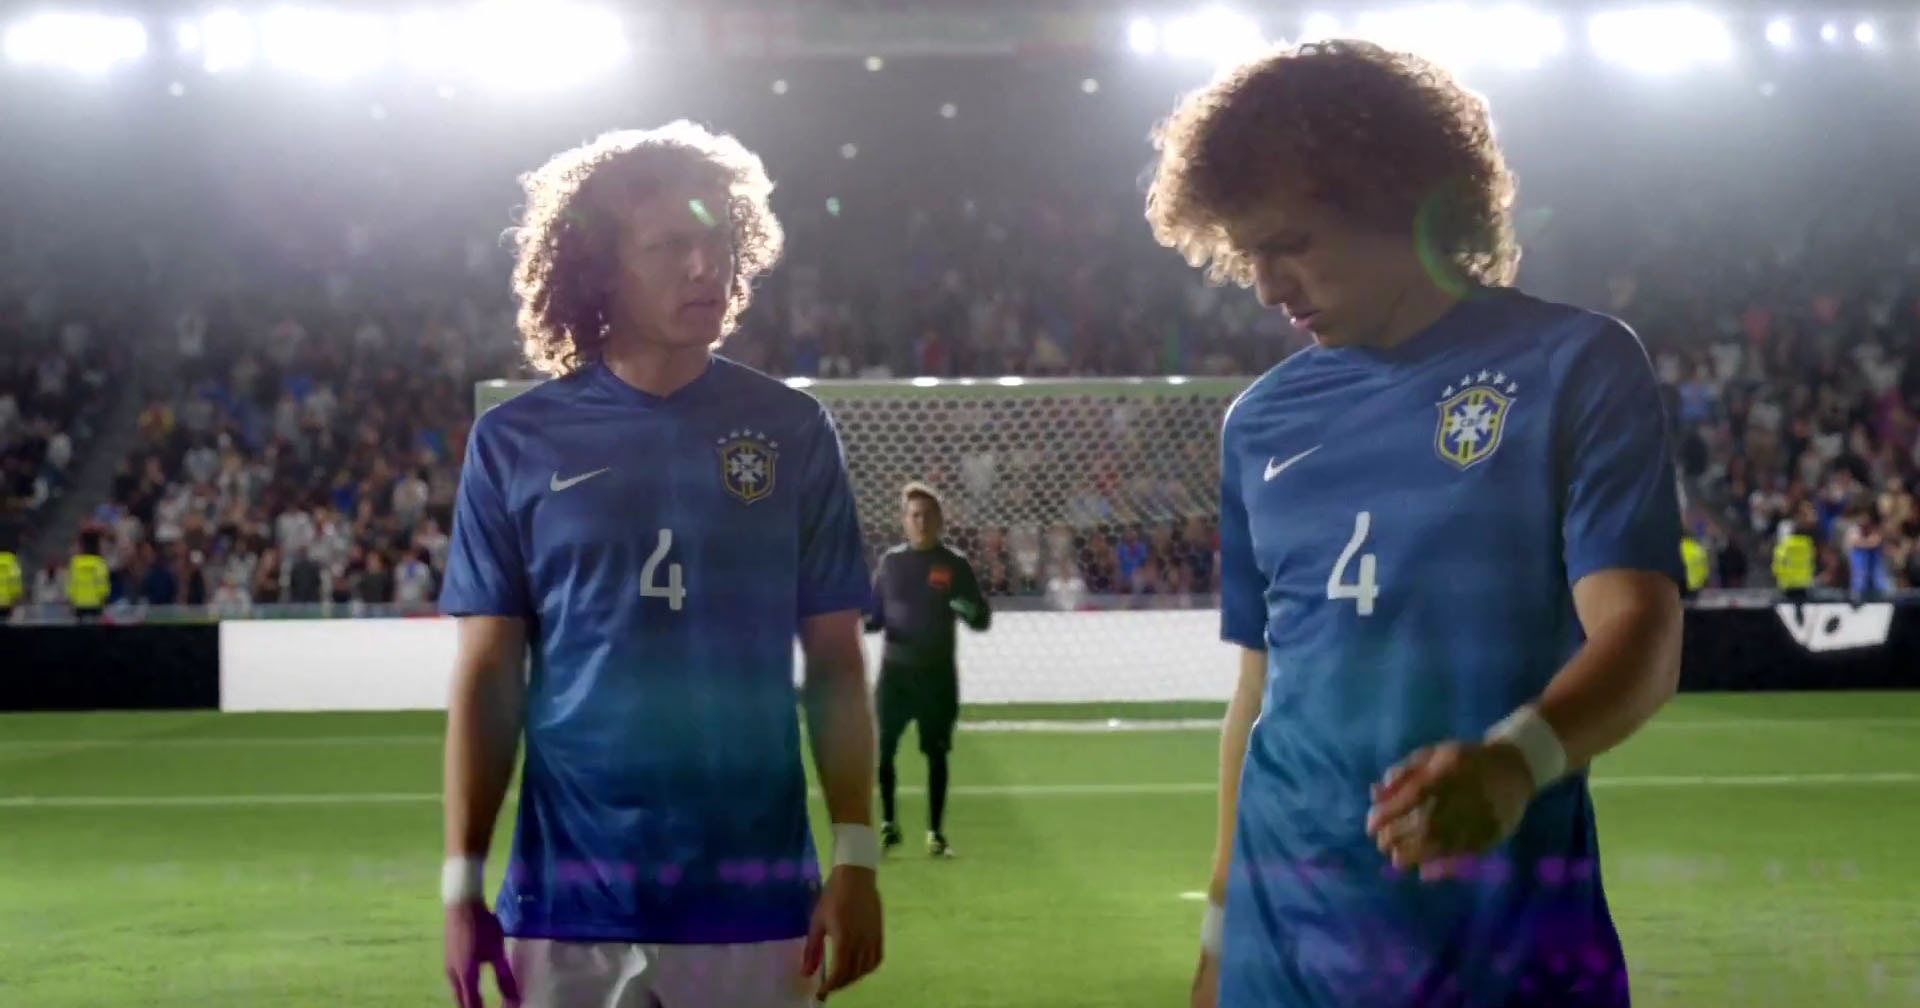 David Luiz and his twin double in the new Nike video ad